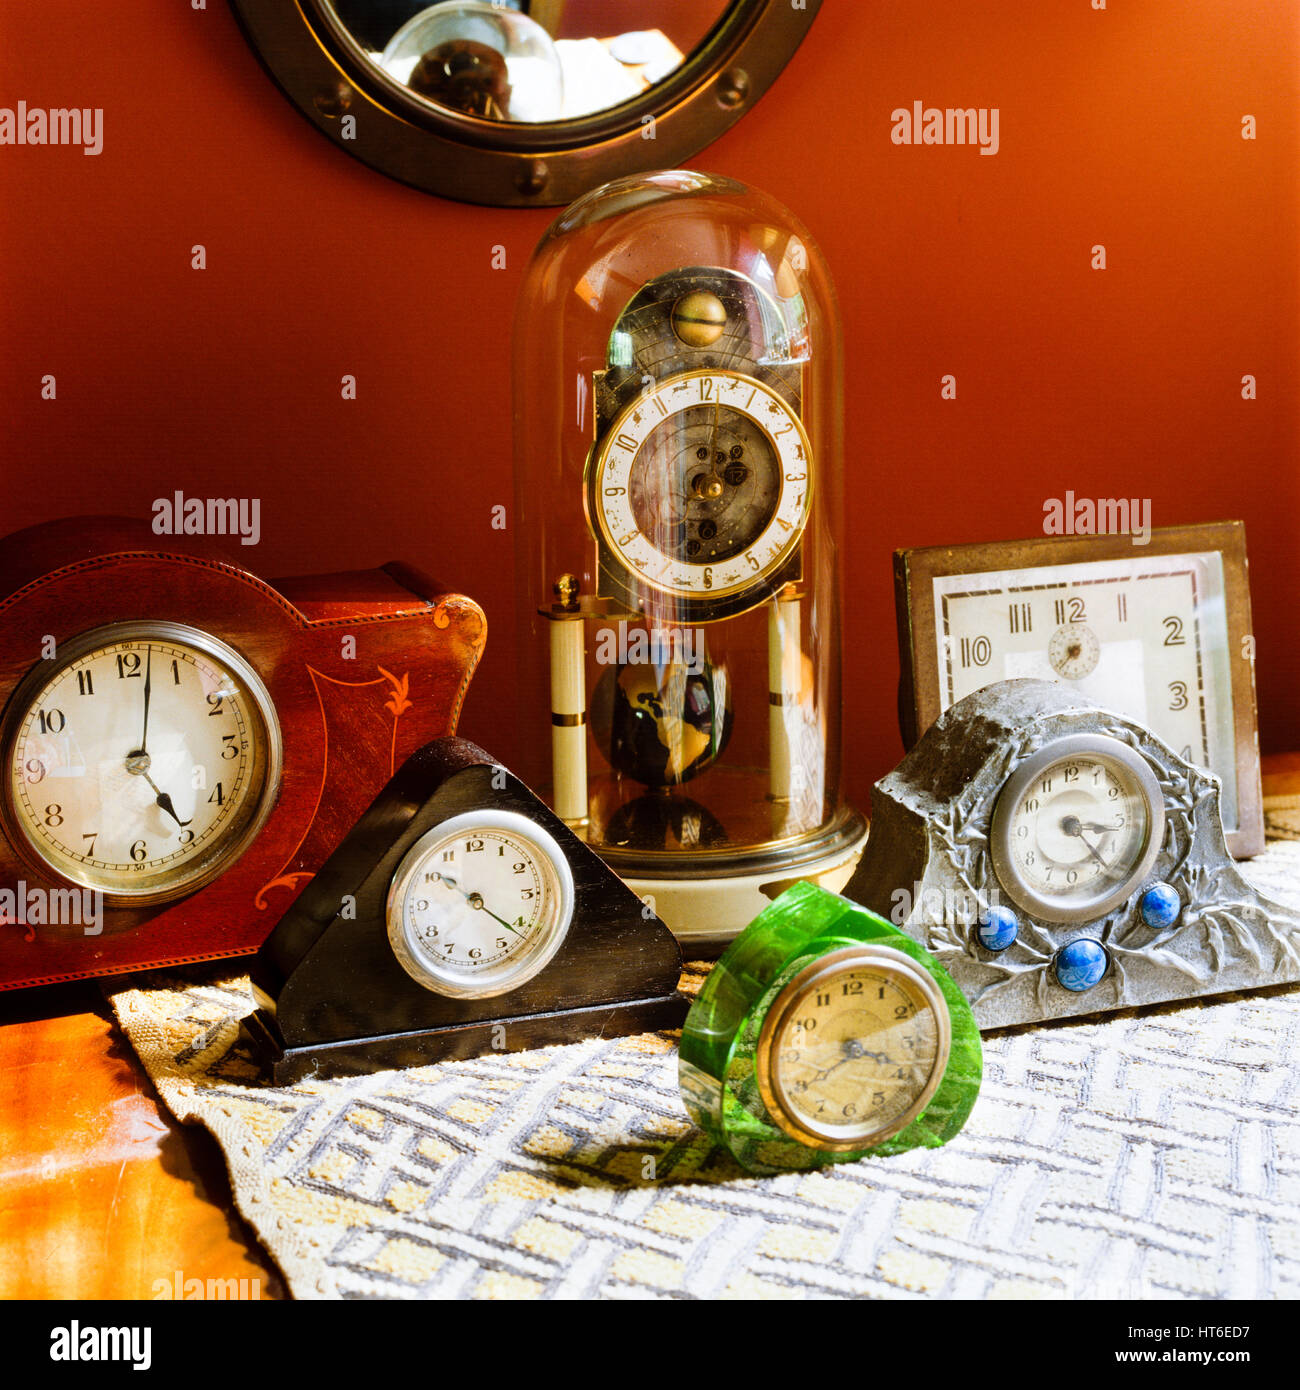 Collection of clocks. - Stock Image